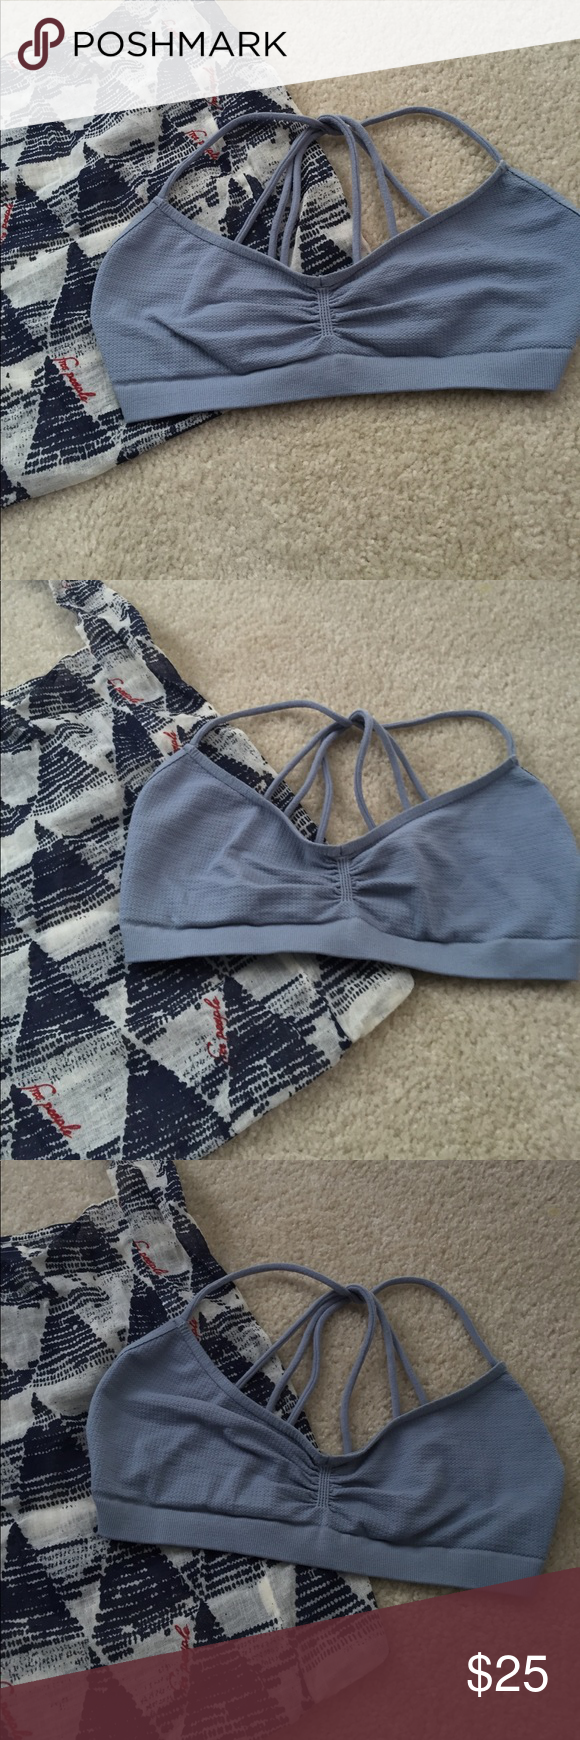 Free People Bralette *with bag* Free People Bralette size M / L perfect condition worn twice! Would trade for other FP - pretty light blue & comes with bag! Free People Intimates & Sleepwear Bras